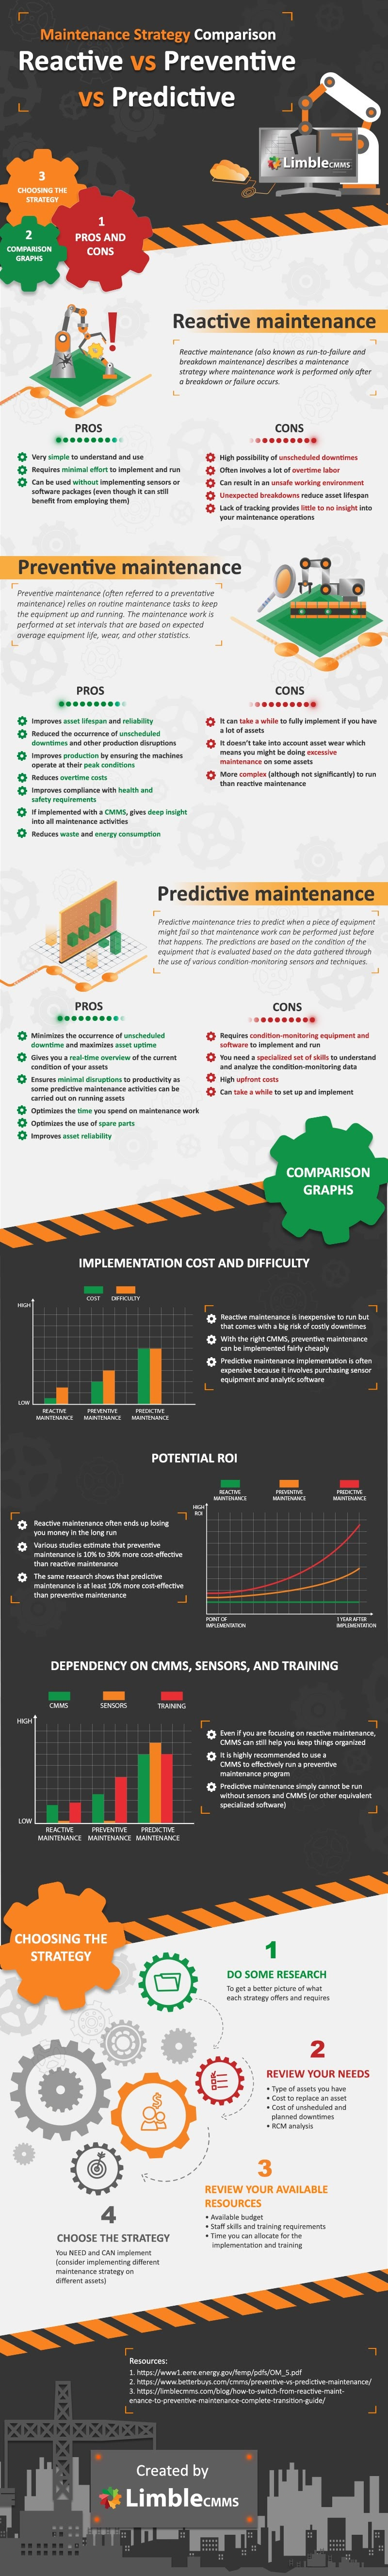 3 Main Types Of Maintenance Strategies Reactive vs Preventive vs Predictive #infographic